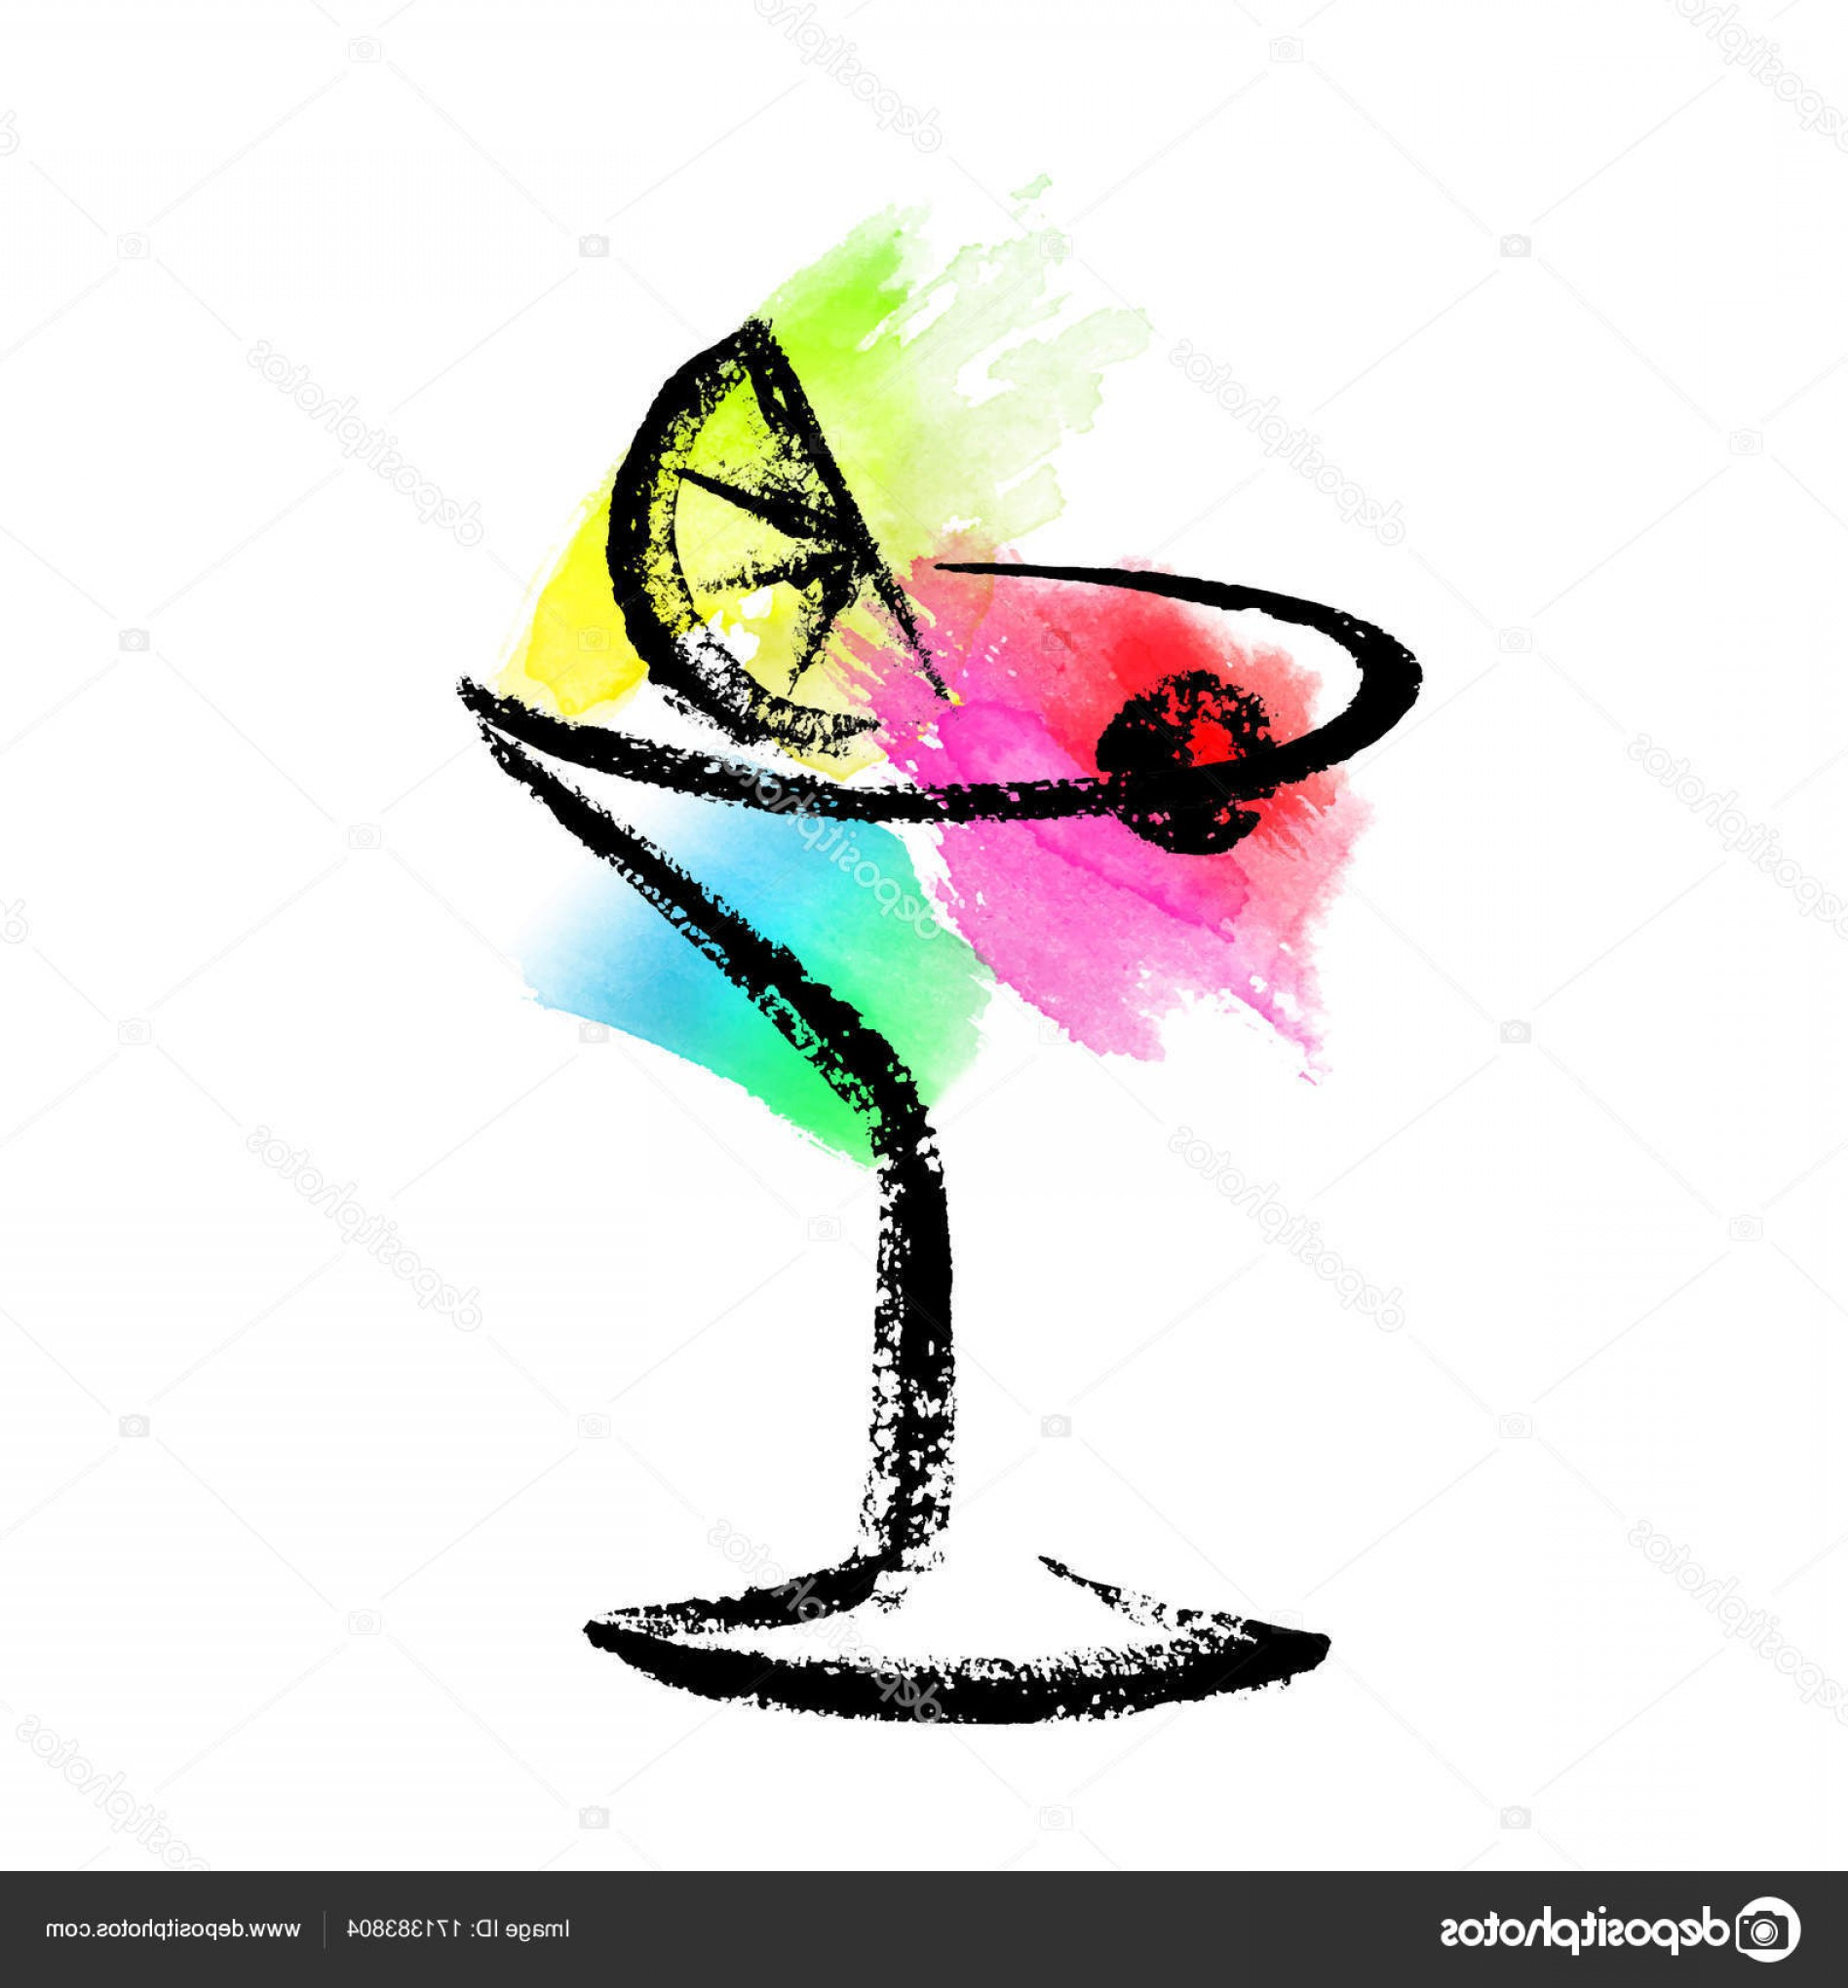 Cocktail Glasses Vector Art Decor: Stock Illustration Sketch Of Cocktail Glass On